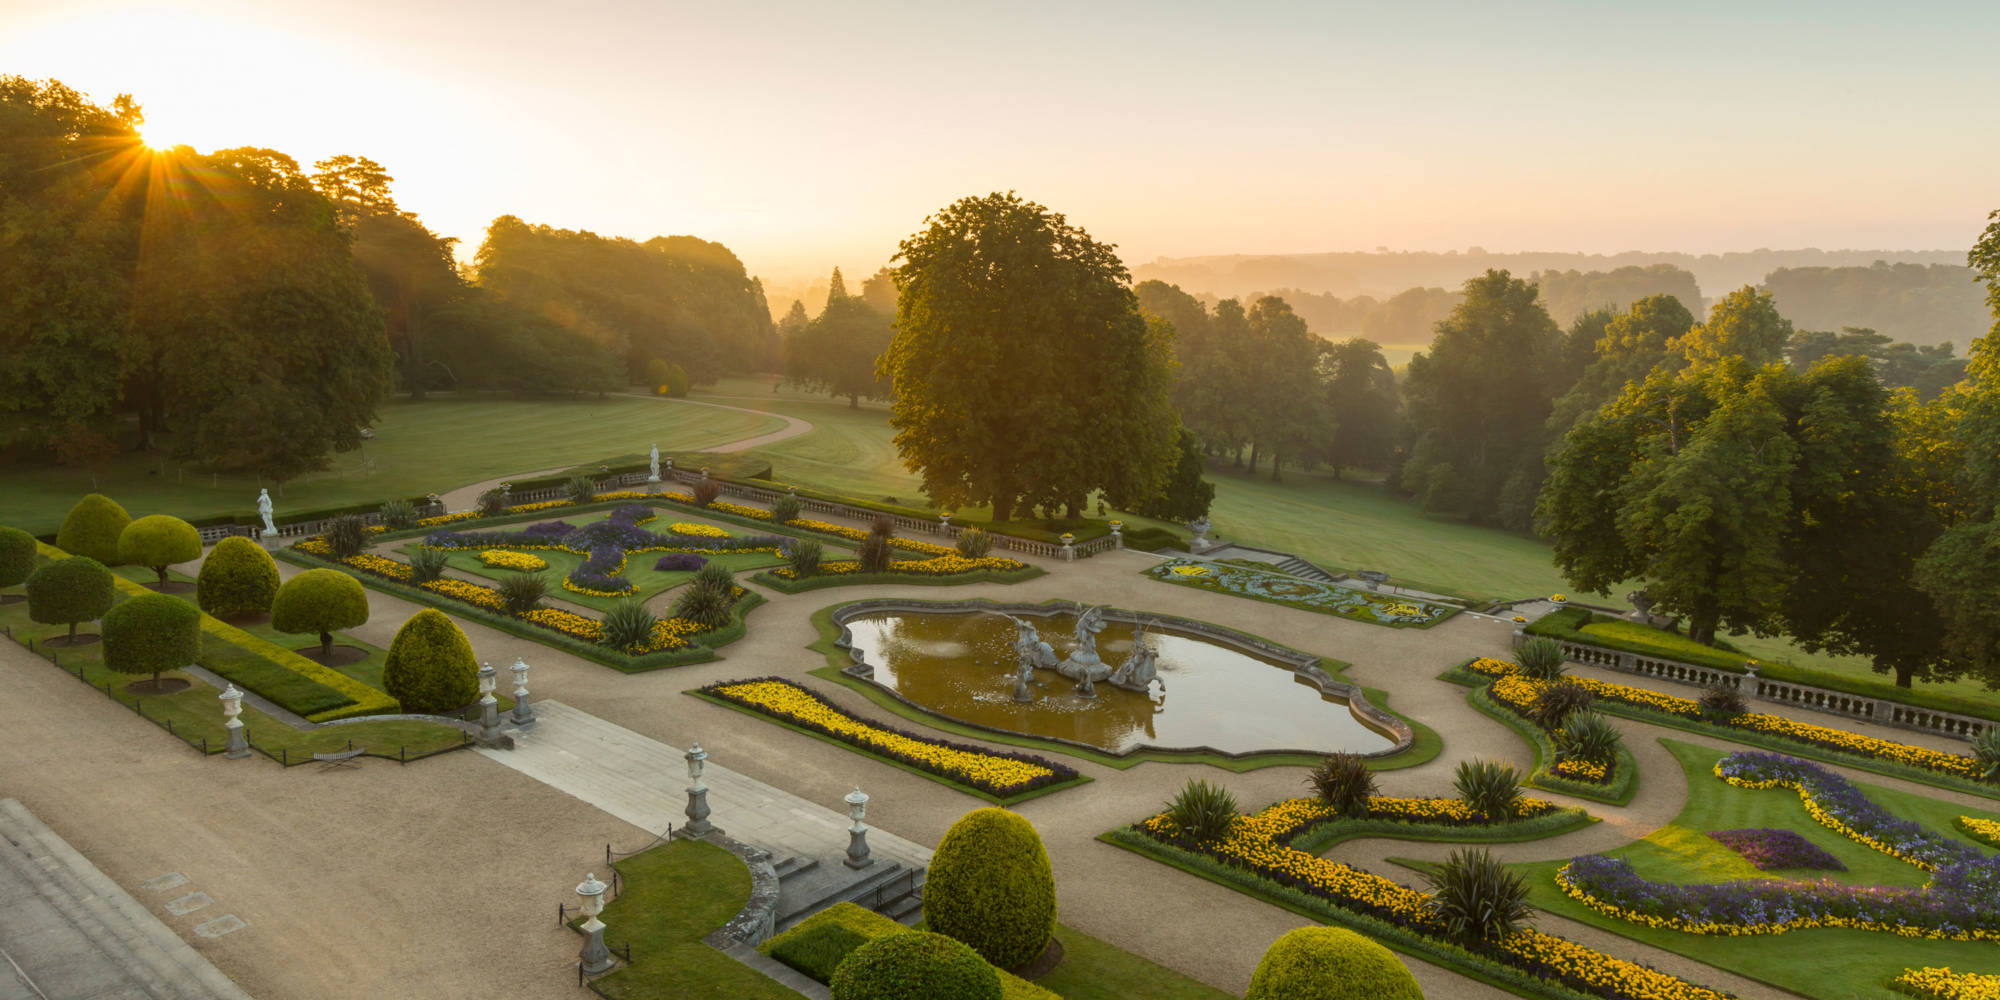 Birds eye view of parterre gardens